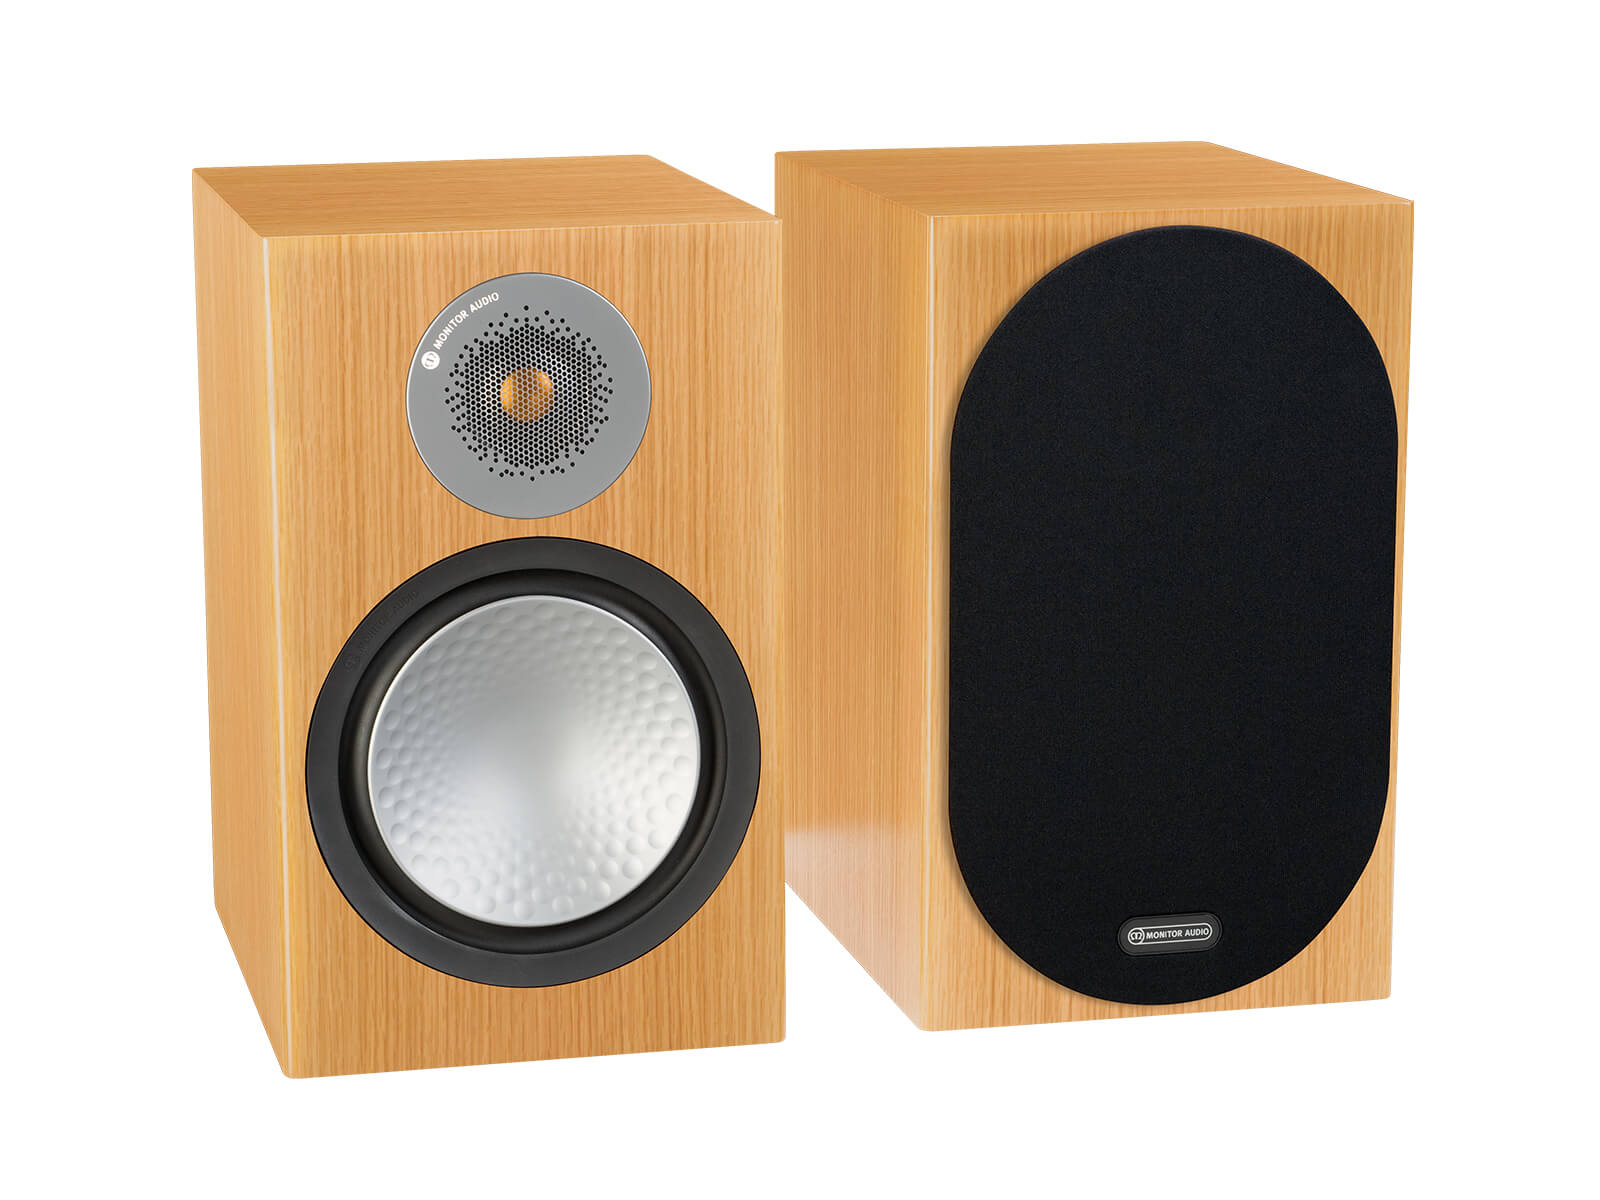 Silver 100, bookshelf speakers, with and without grille in a natural oak finish.